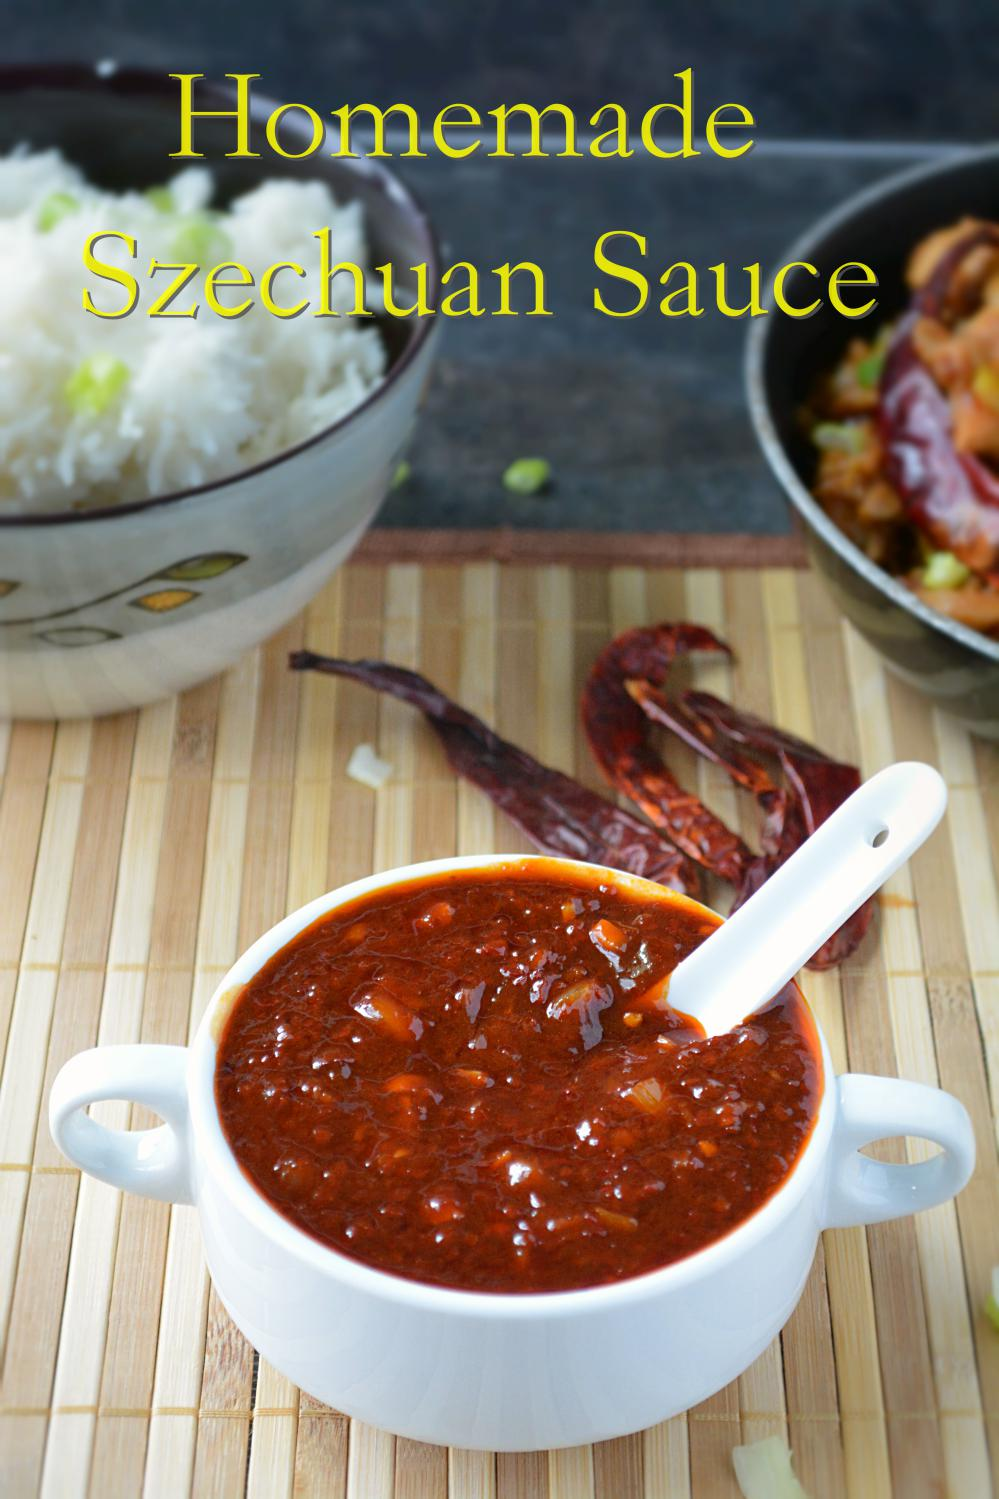 Homemade Szechuan Sauce recipe